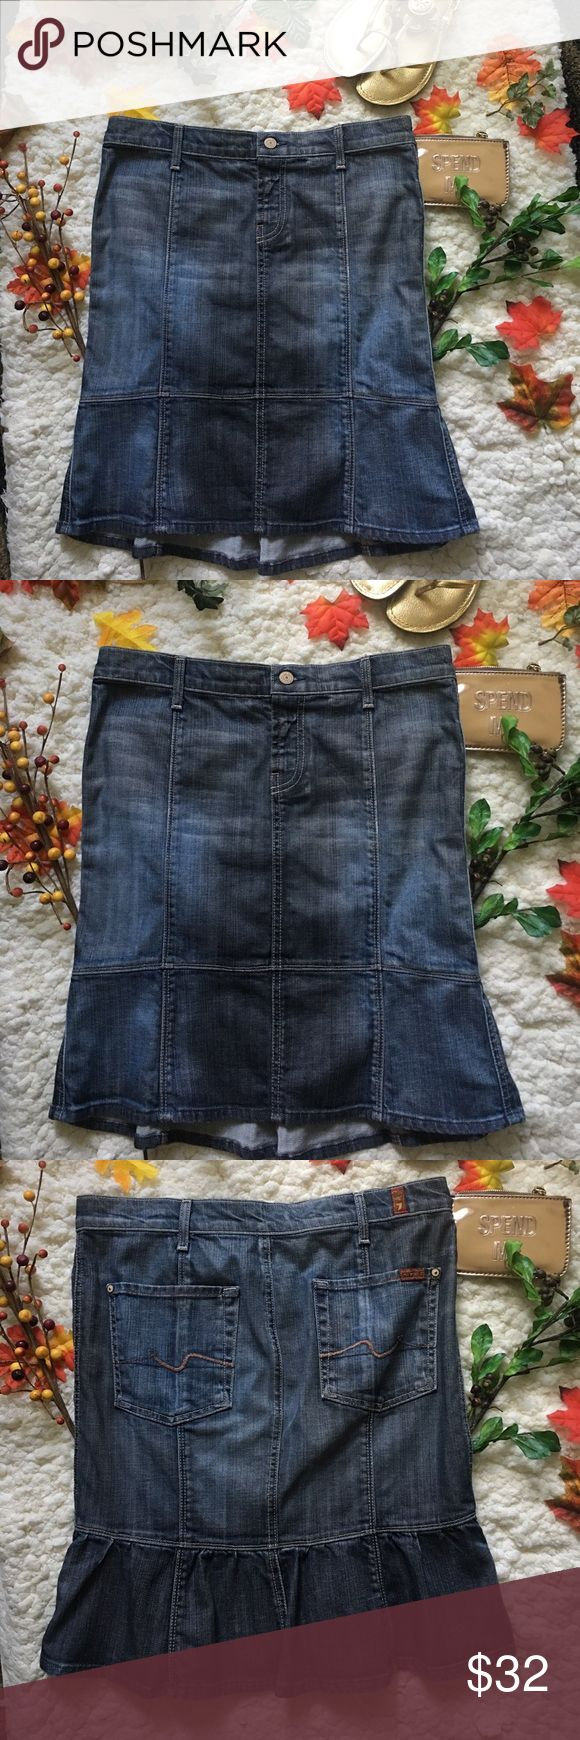 ❤Seven Jeans For all mankind Denim Skirt❤ ❤In great used condition denim skirt by 7 jeans for all mankind in size 29❤Please see all photos❤ seven for all man kind Skirts